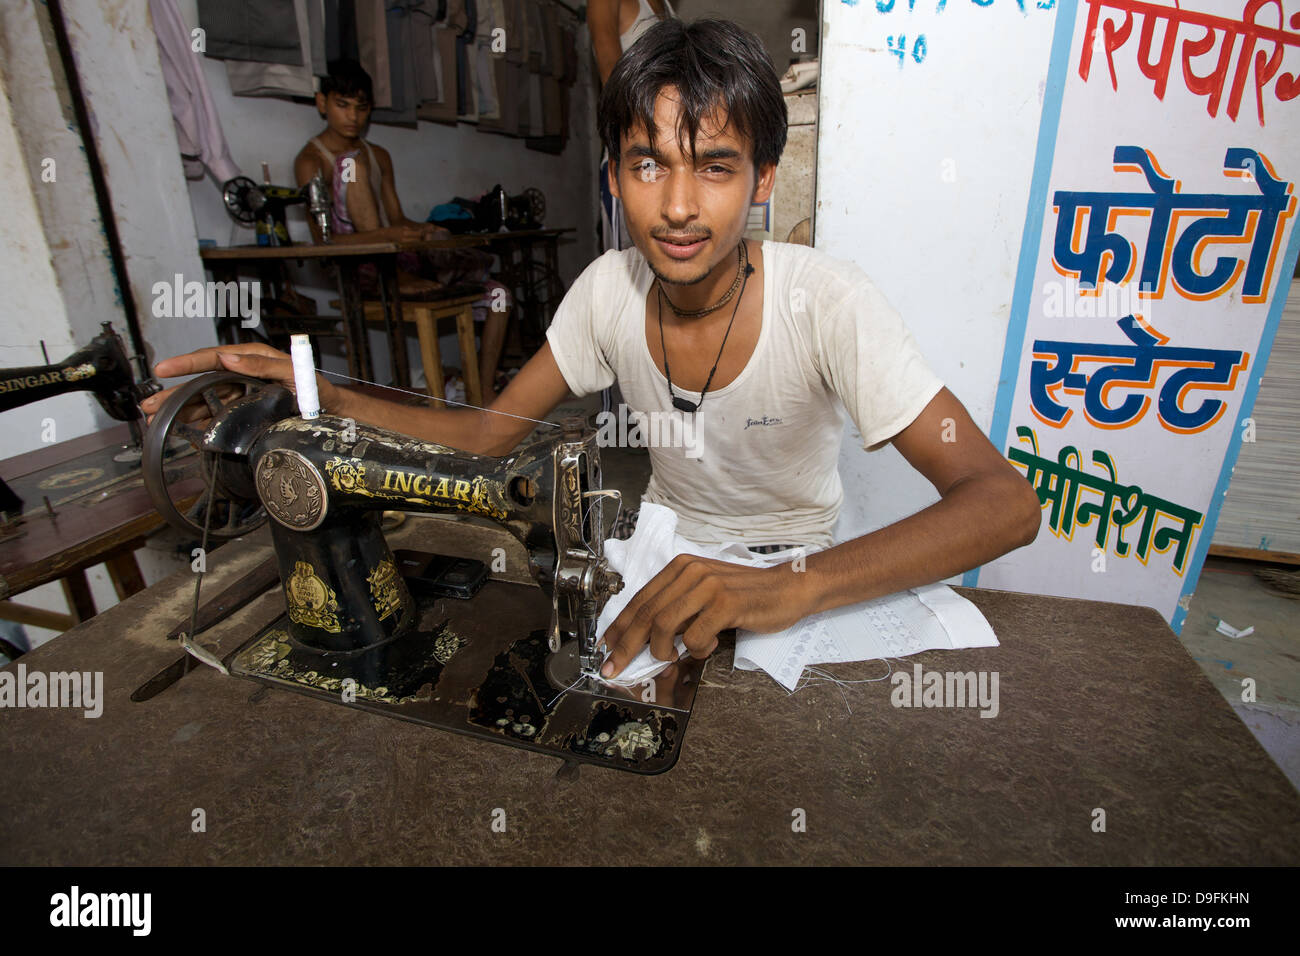 A young male working a sewing machine in Delhi In India. Indian business. Indian clothing business. Indian tailor. - Stock Image